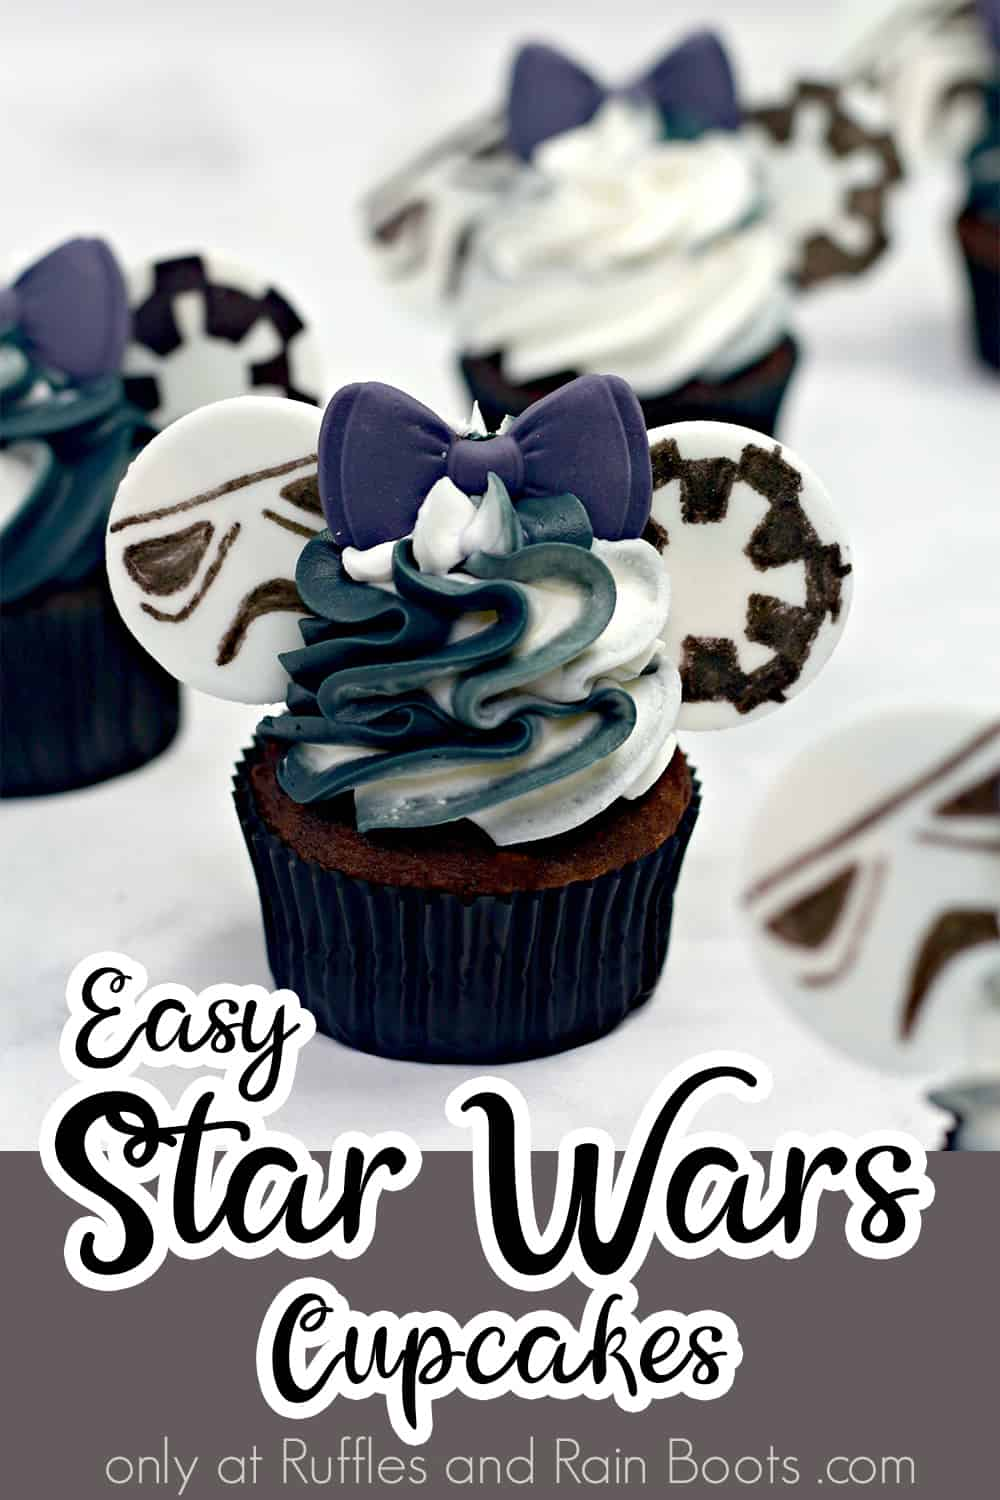 easy cupcakes for a star wars party with text which reads easy star wars cupcakes